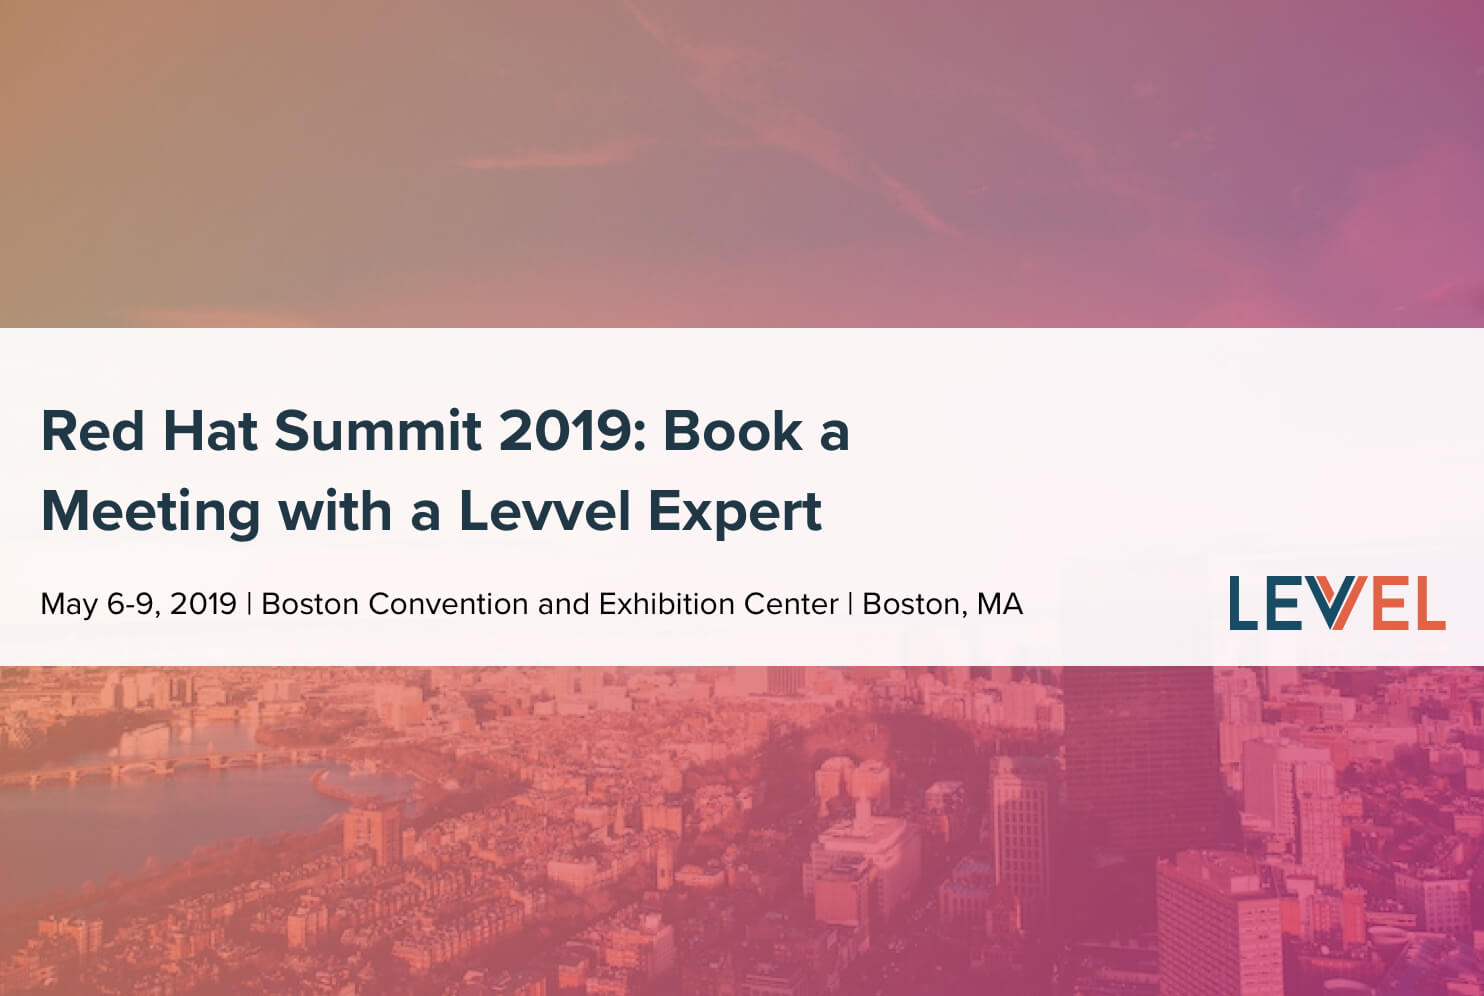 Red Hat Summit 2019: Book a Meeting with a Levvel Expert